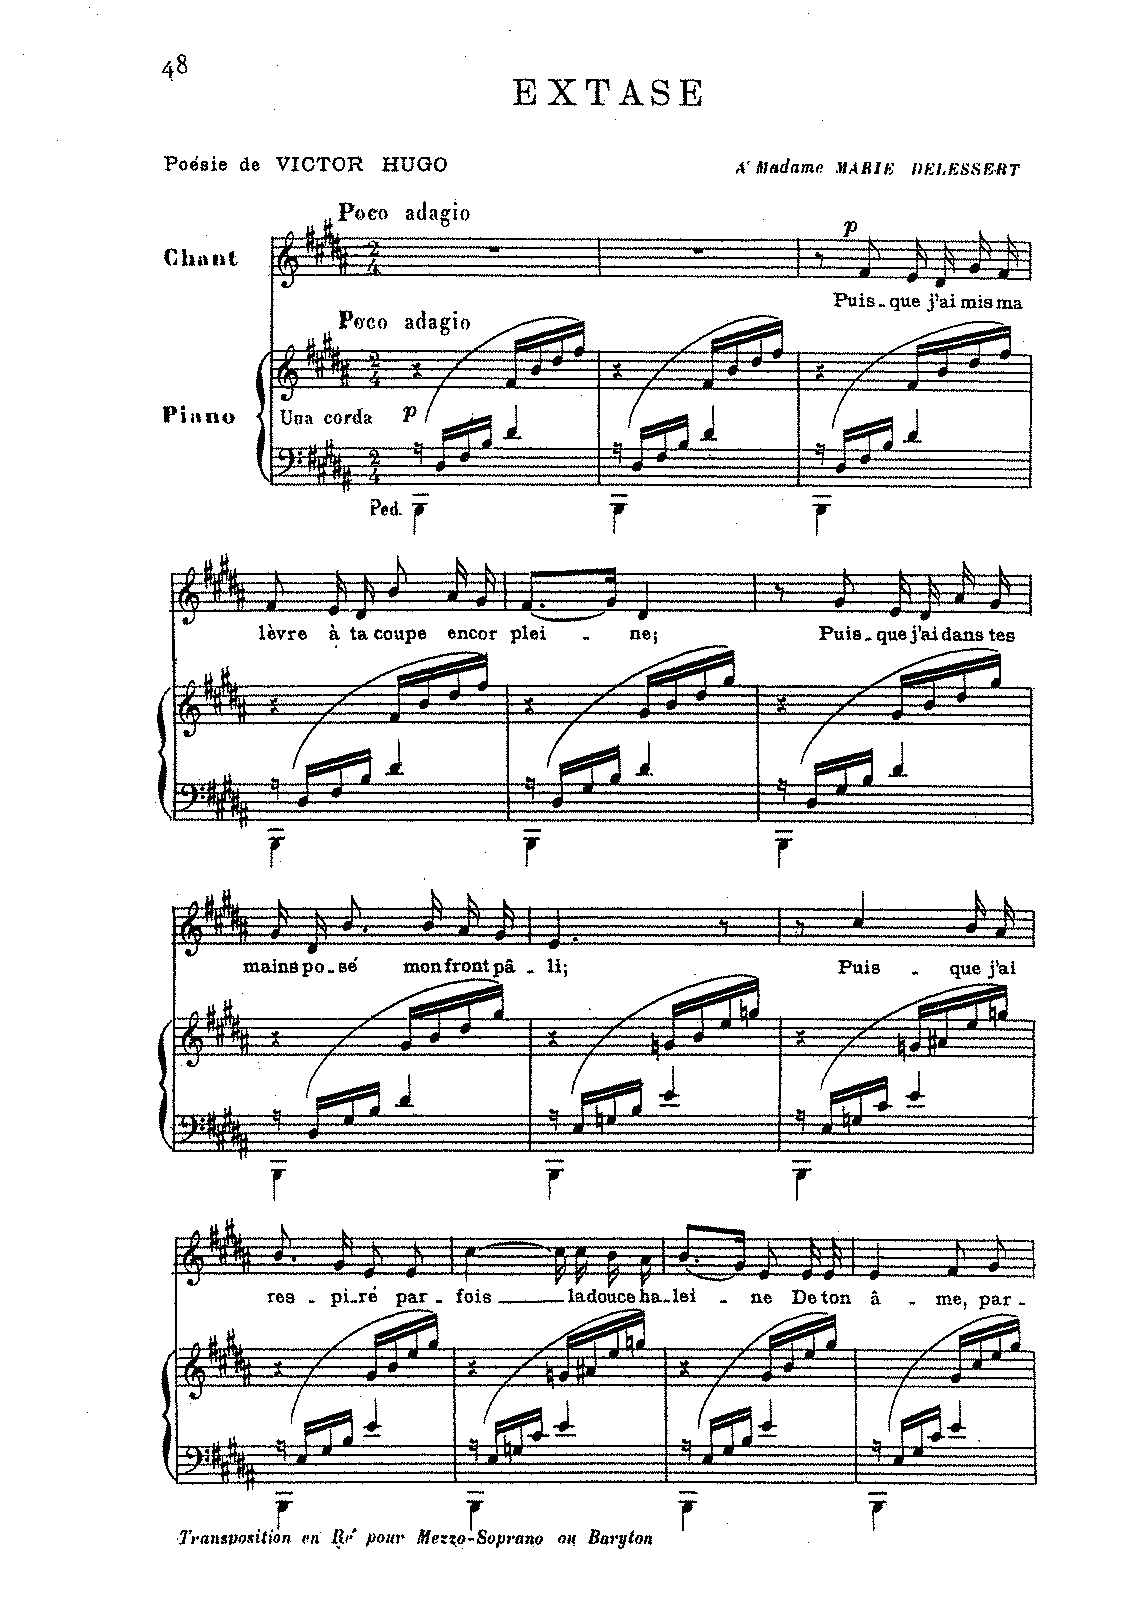 PMLP122446-Saint-Saëns - Extase (voice and piano).pdf